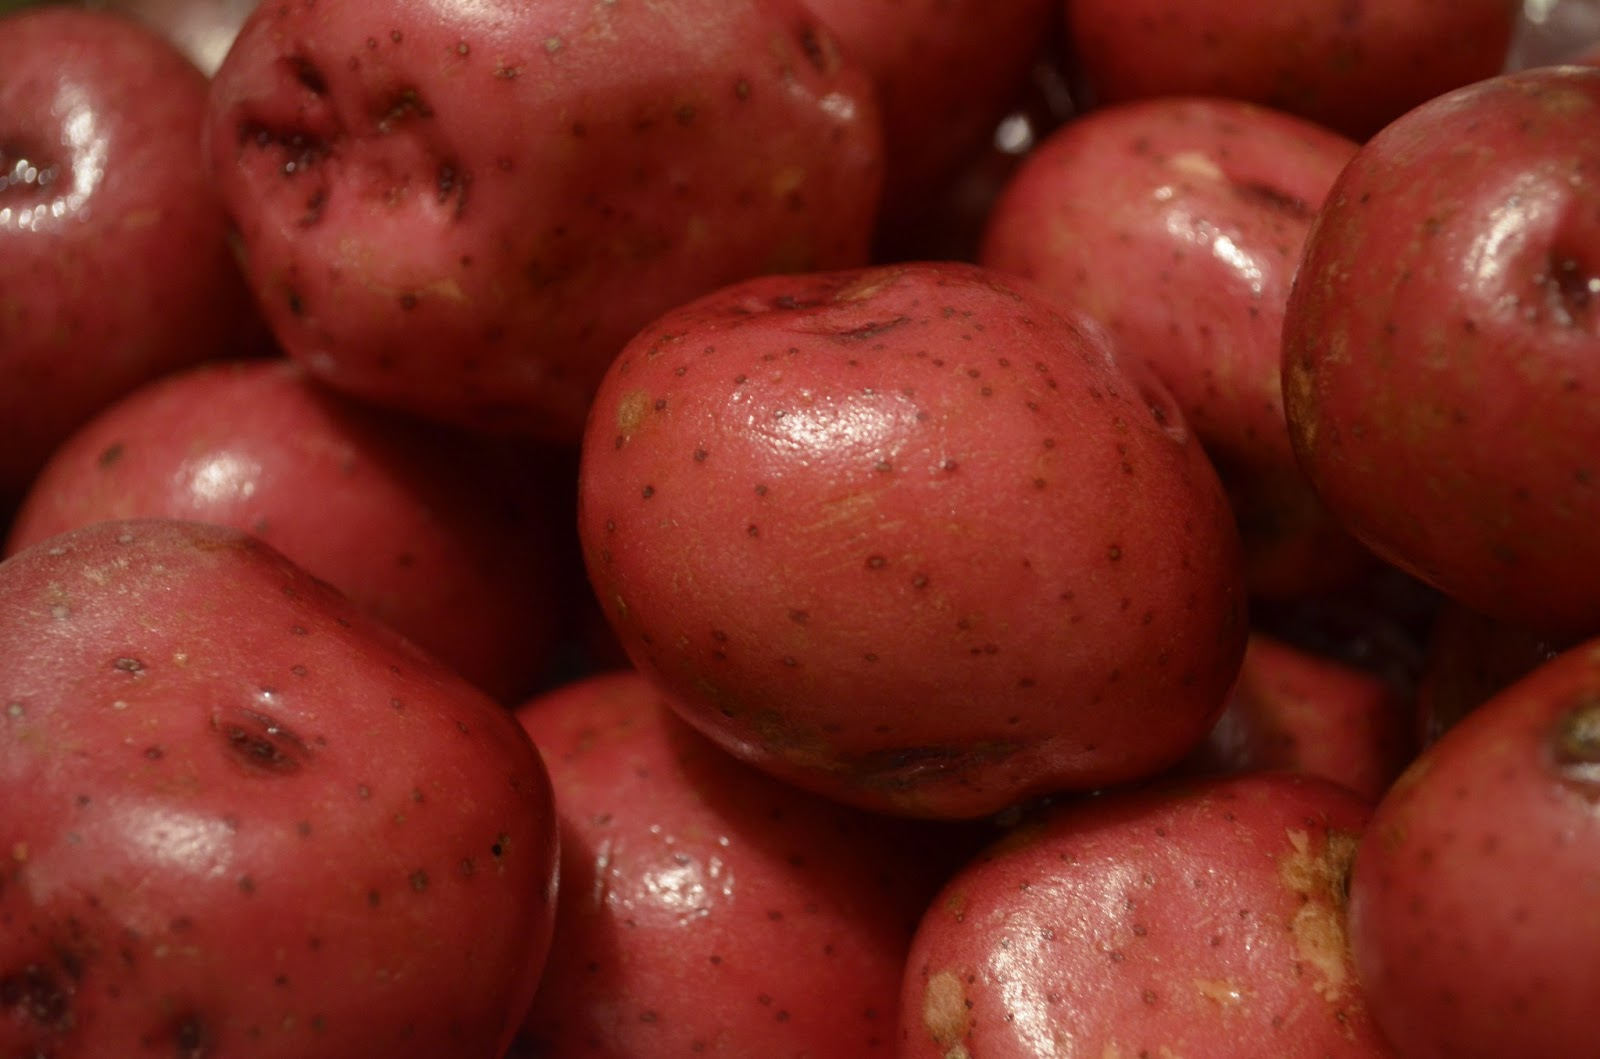 scrub up a couple of pounds of red bliss potatoes